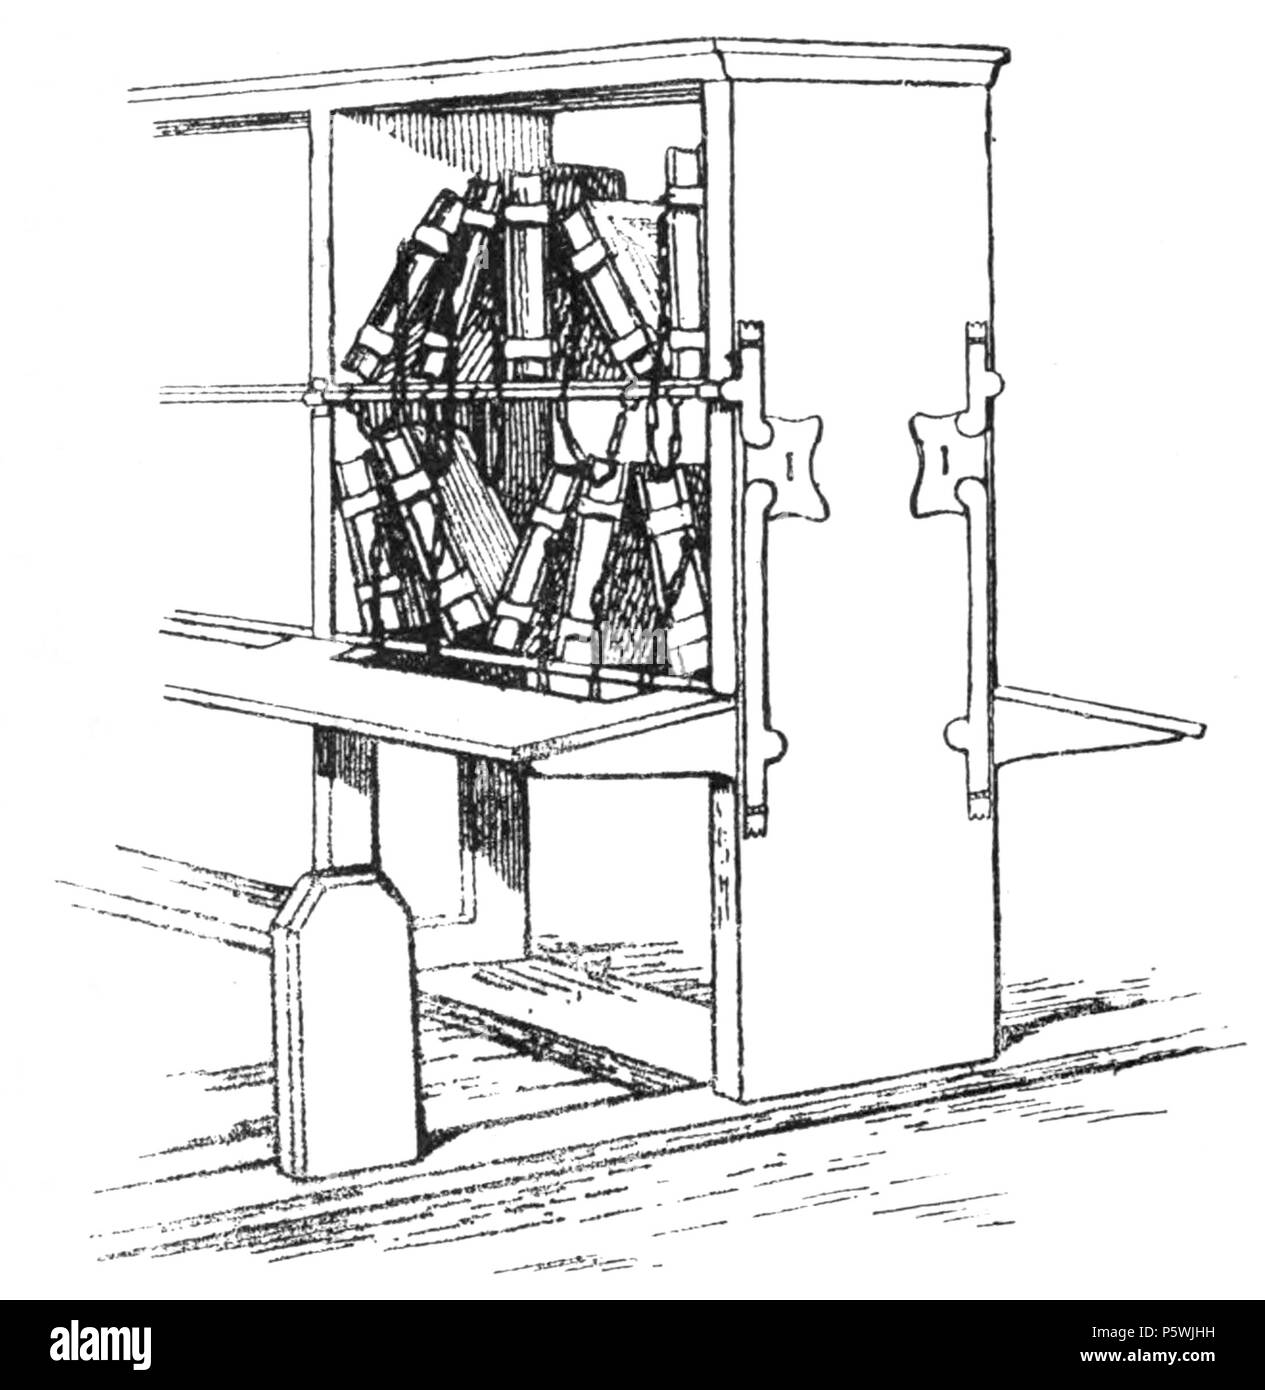 446 Diagrammatic Sketch Of A Bookcase With Reader S Desk And